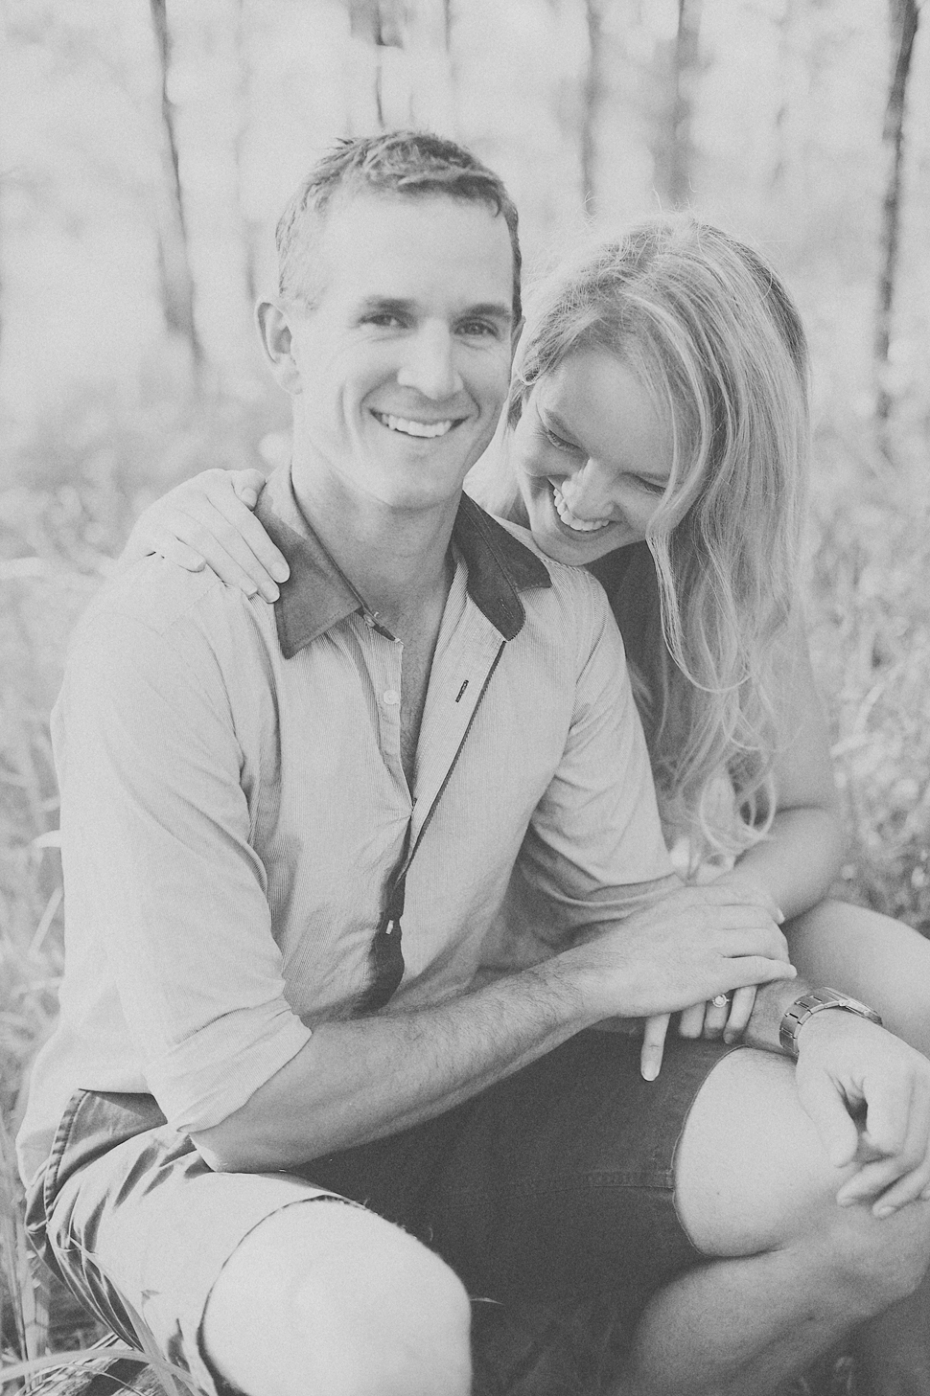 steph-josh-engaged-gold-coast-photographer003